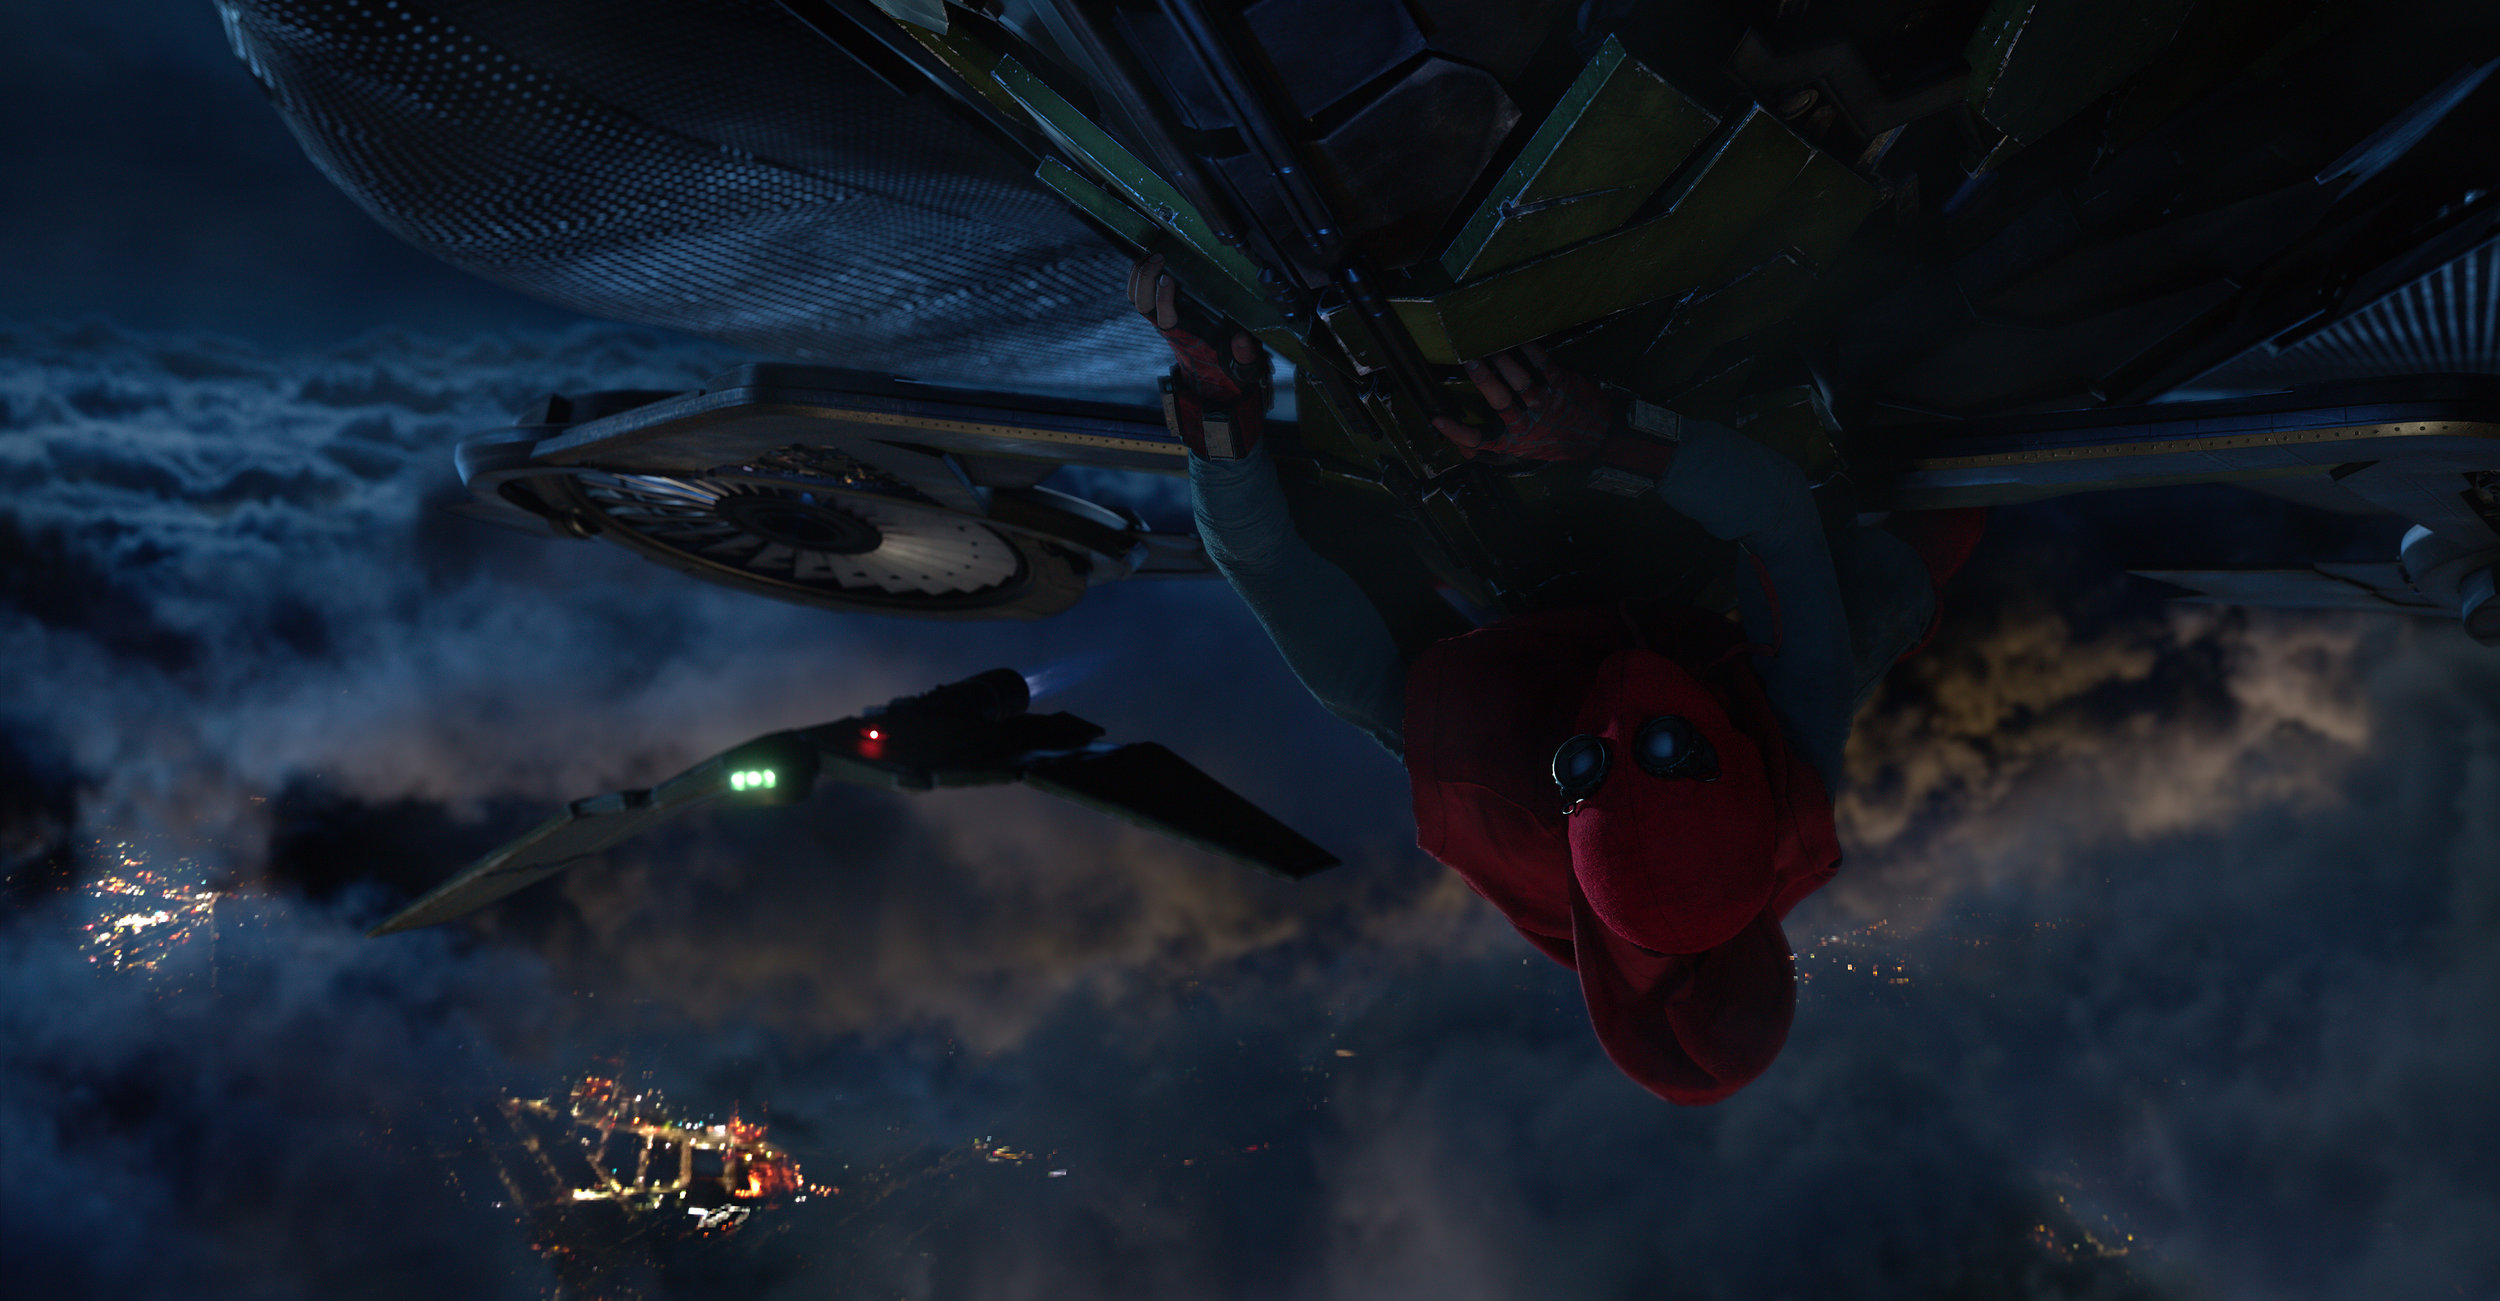 Nephew Adventures-Spider-Man: Homecoming - Amanda has two of her nephews back to talk about Spider-Man: Homecoming. They ponder how they would react if they found out their best friend was Spider-Man and weigh in on how good or bad the villains are.